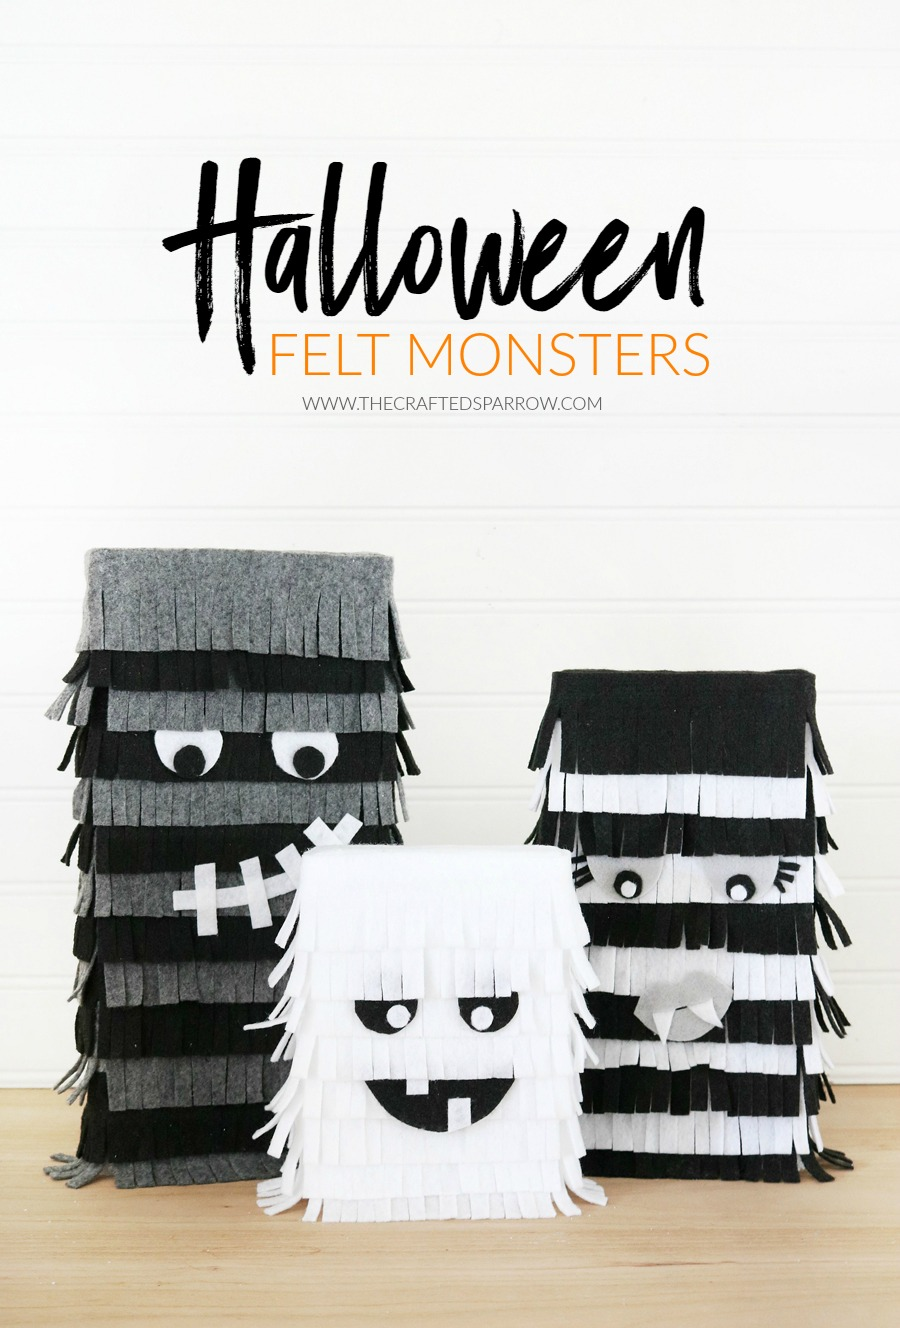 Halloween Felt Monsters